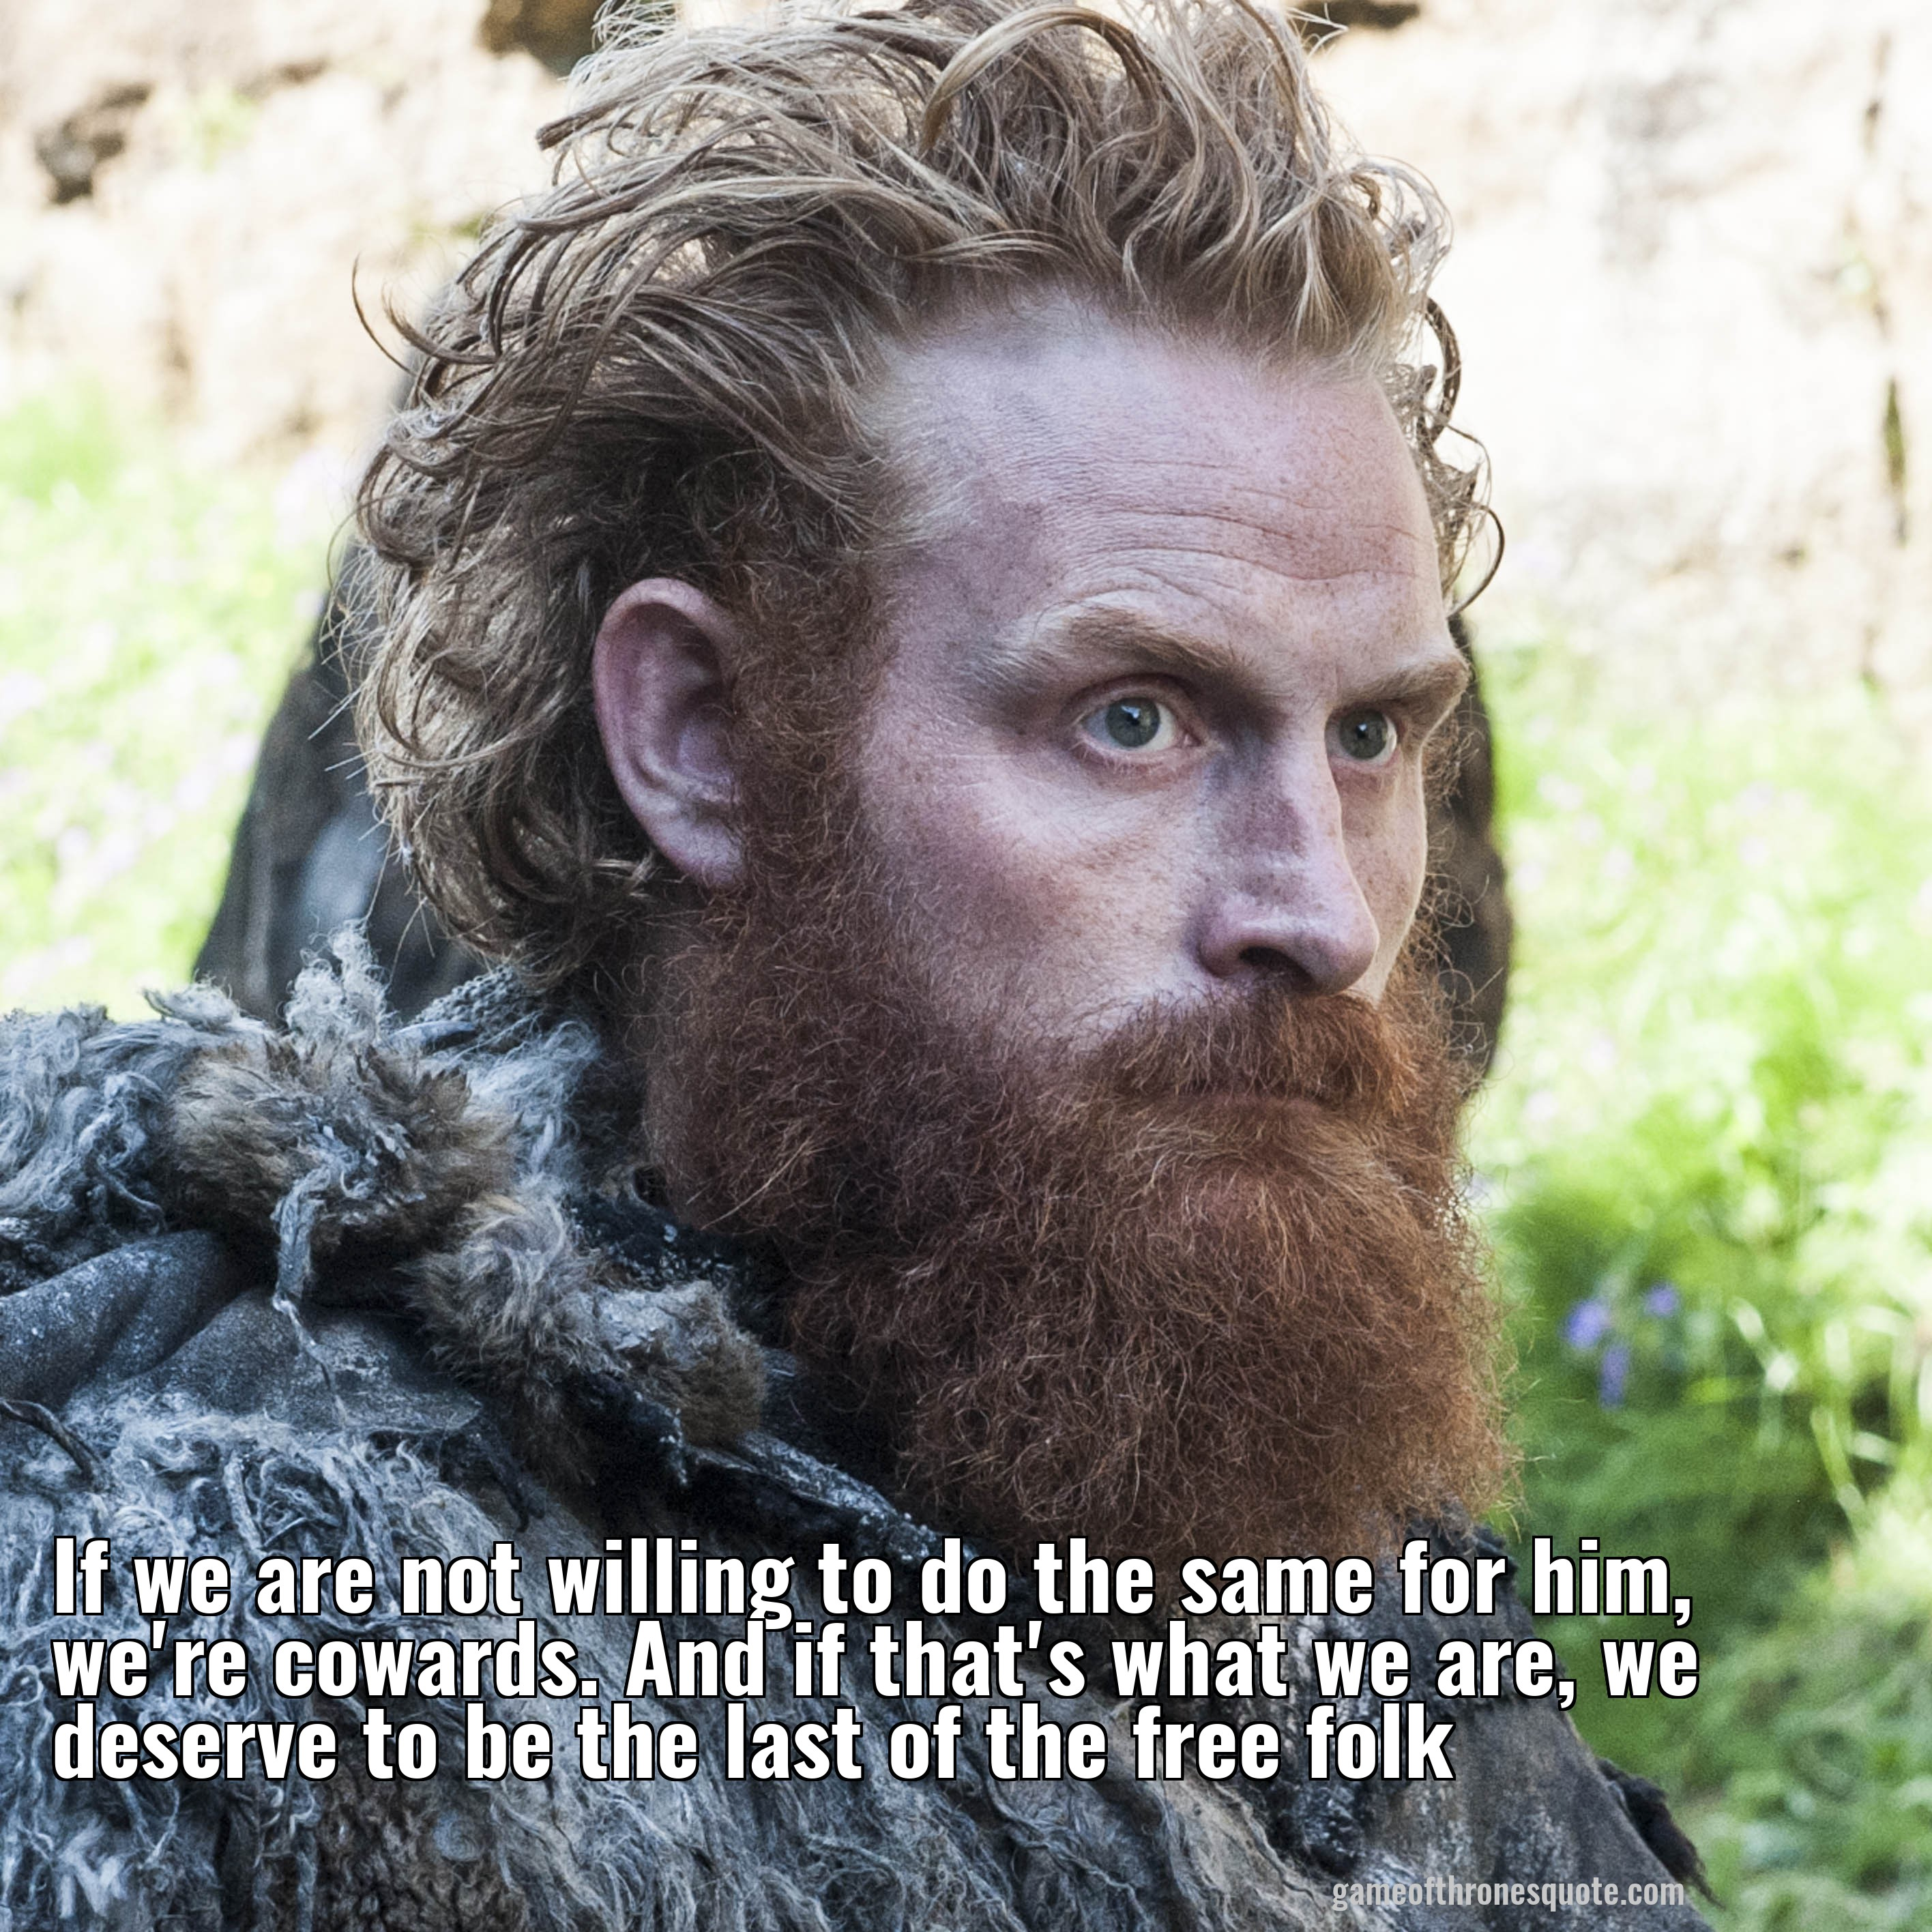 If we are not willing to do the same for him, we're cowards. And if that's what we are, we deserve to be the last of the free folk